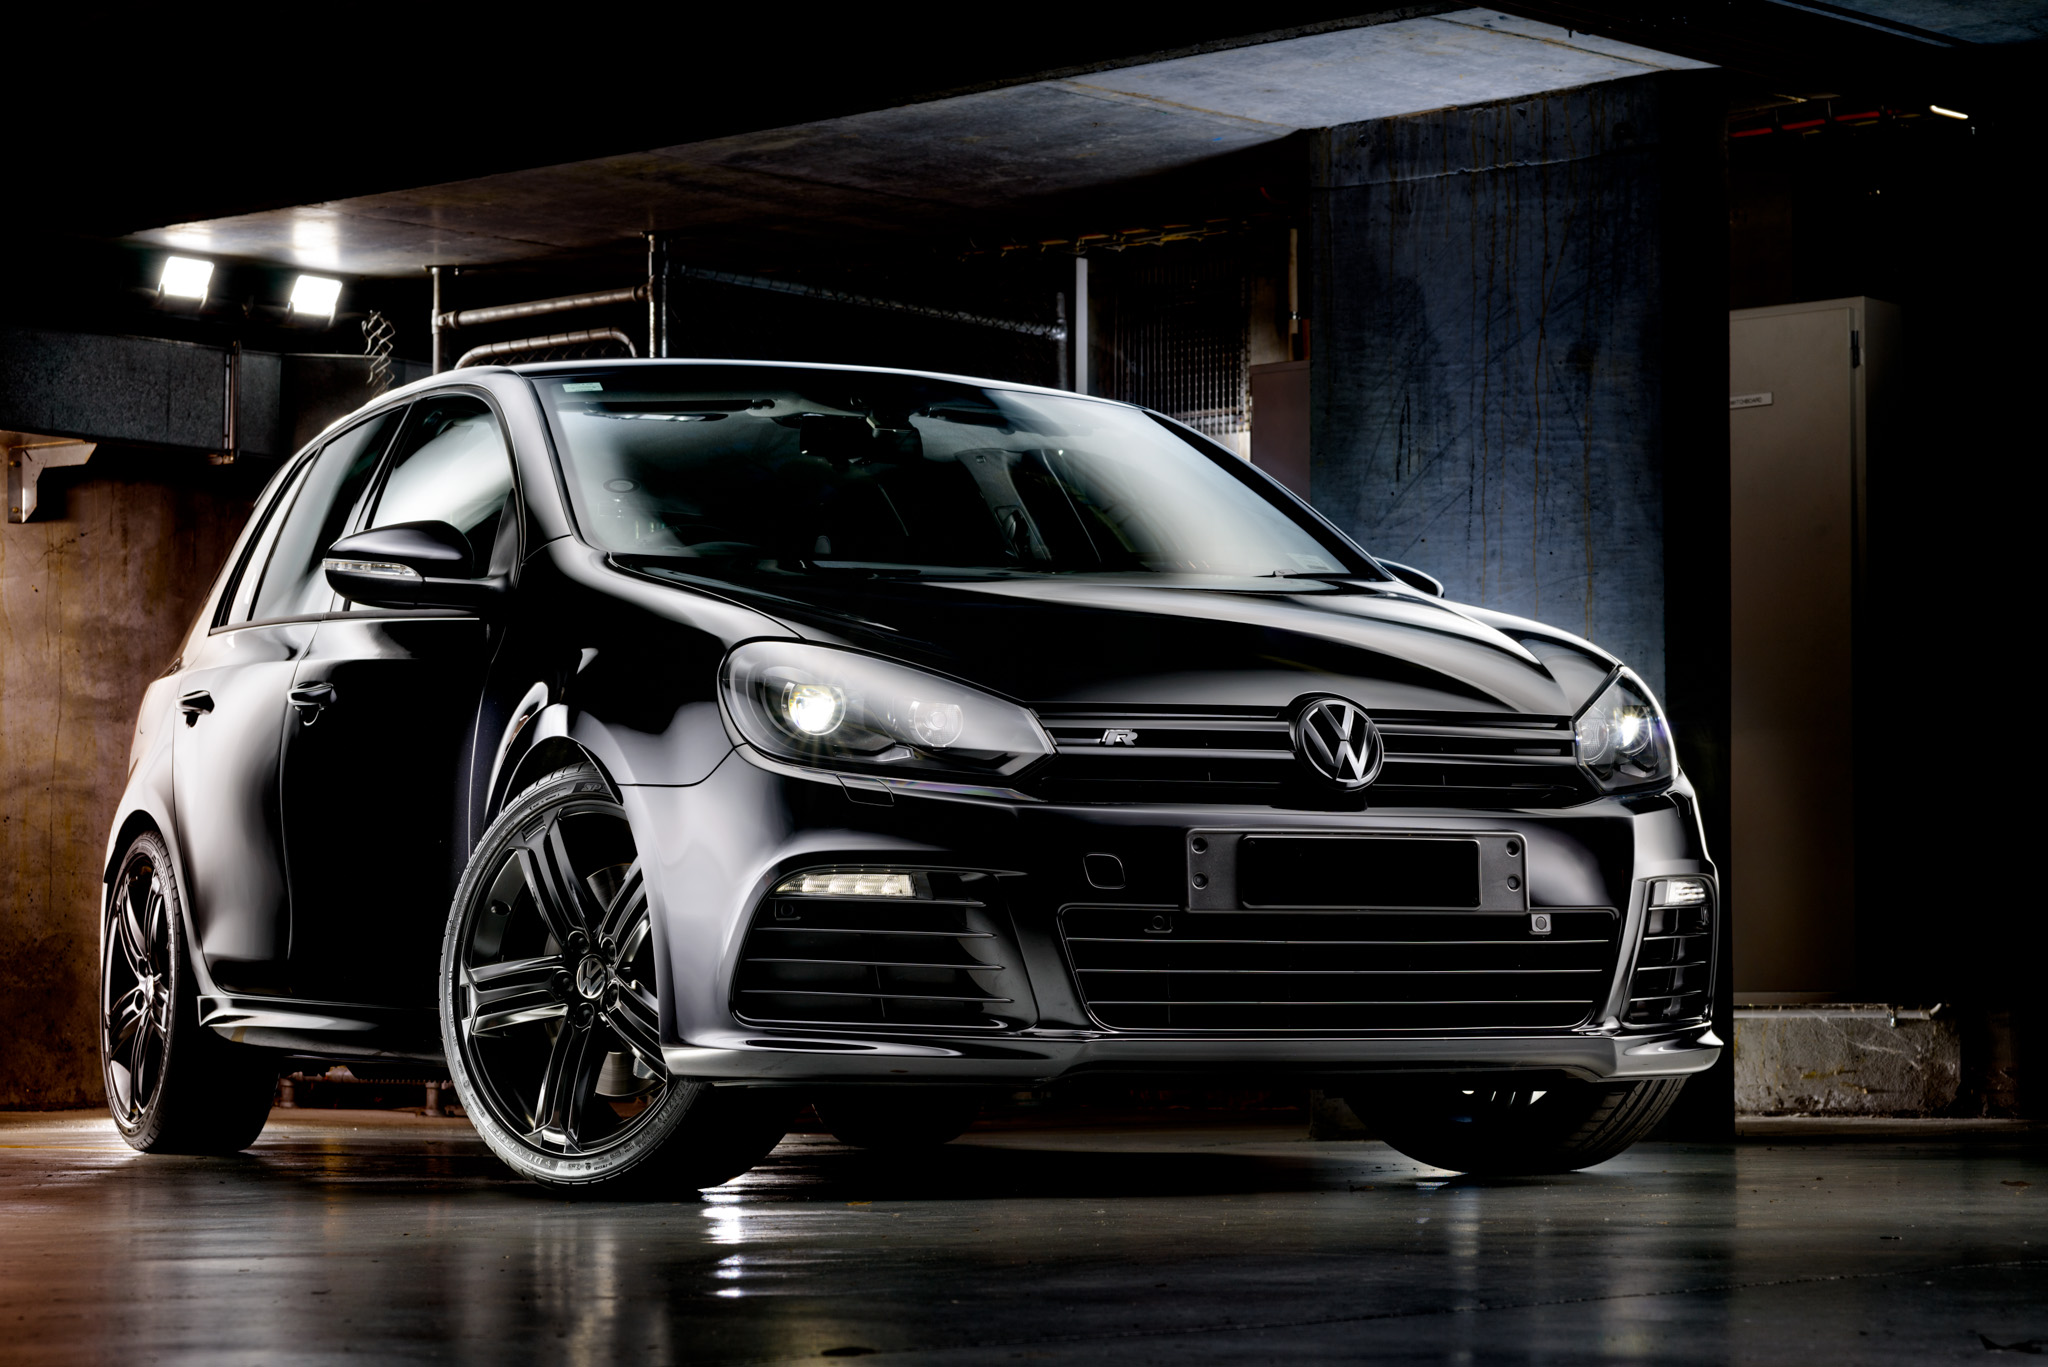 Light Painting - Volkswagen Golf R Mk6 black